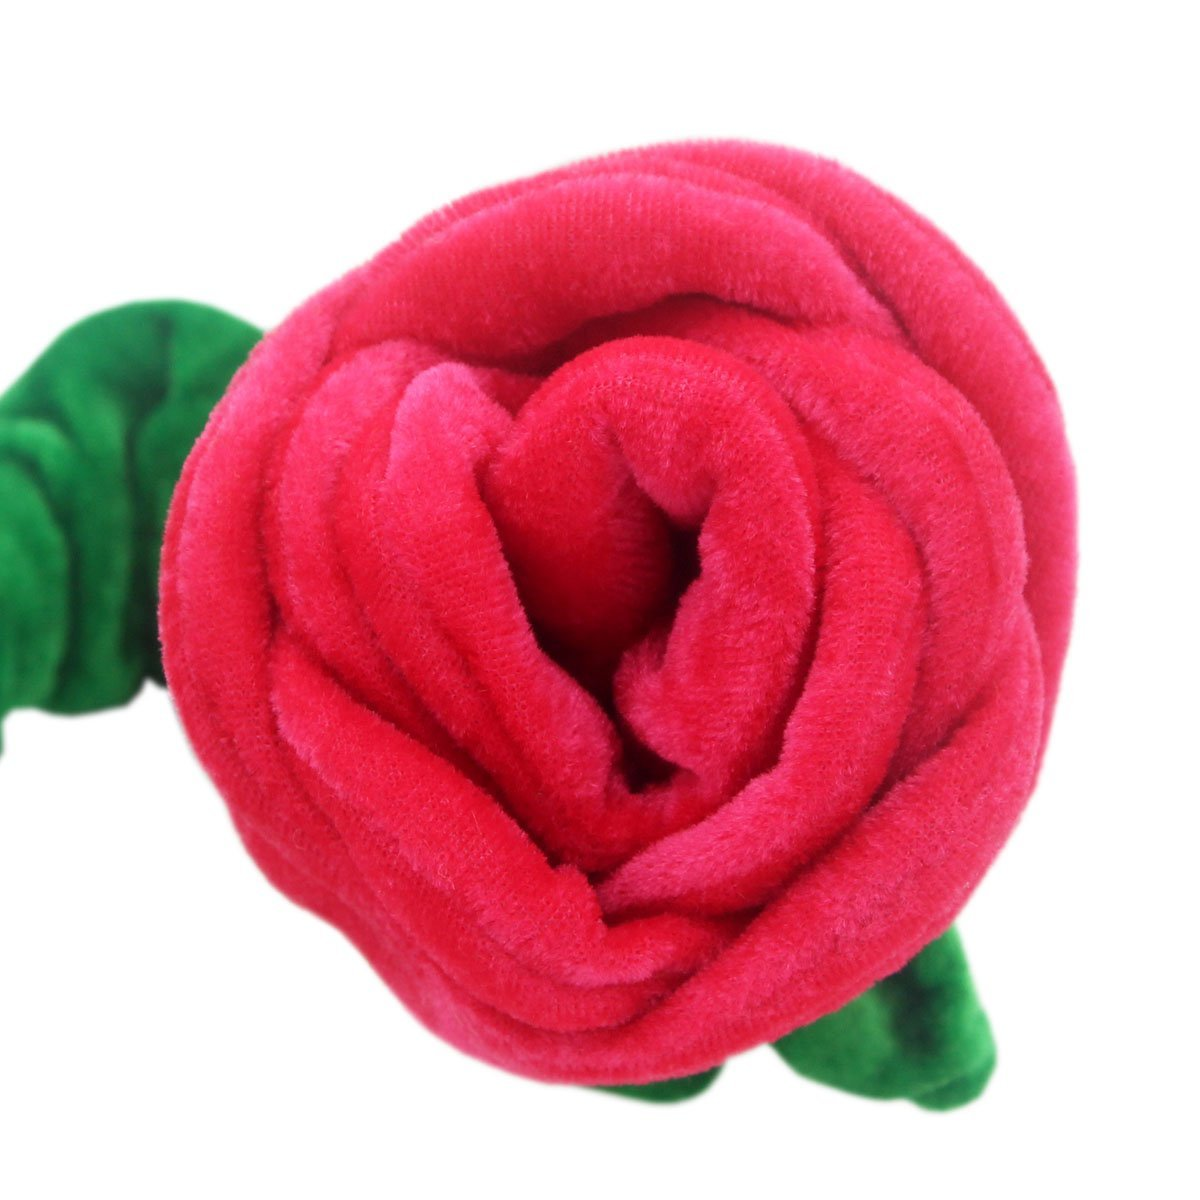 Cheap rose day flowers find rose day flowers deals on line at get quotations jesonn realistic artificial rose plush stuffed flowers for wedding lover valentines day rose izmirmasajfo